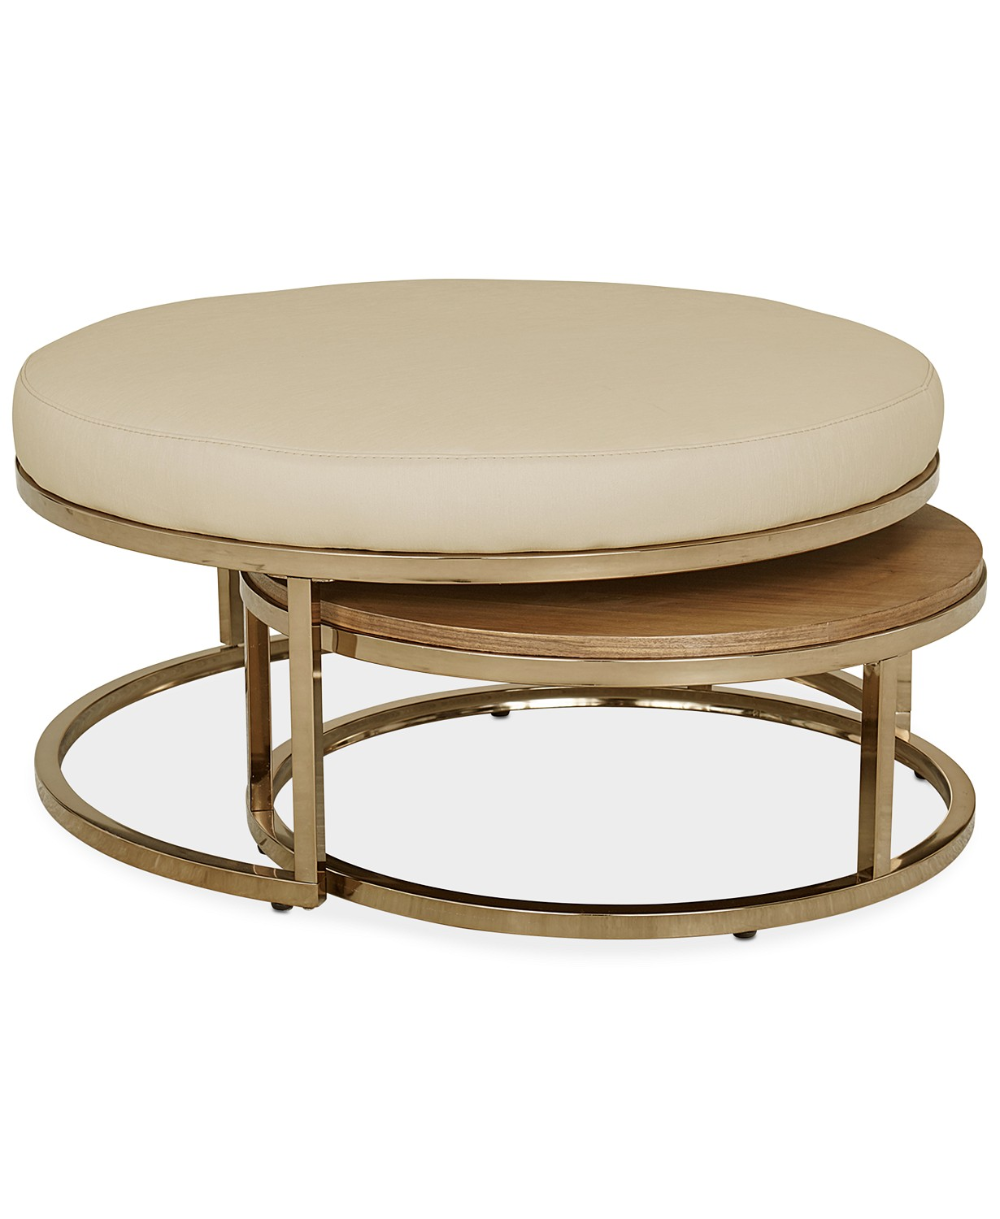 Furniture Jennova Upholstered Round Nesting Coffee Table Created For Macy S Reviews Furniture Macy S In 2020 Round Nesting Coffee Tables Decorating Coffee Tables Round Coffee Table [ png ]